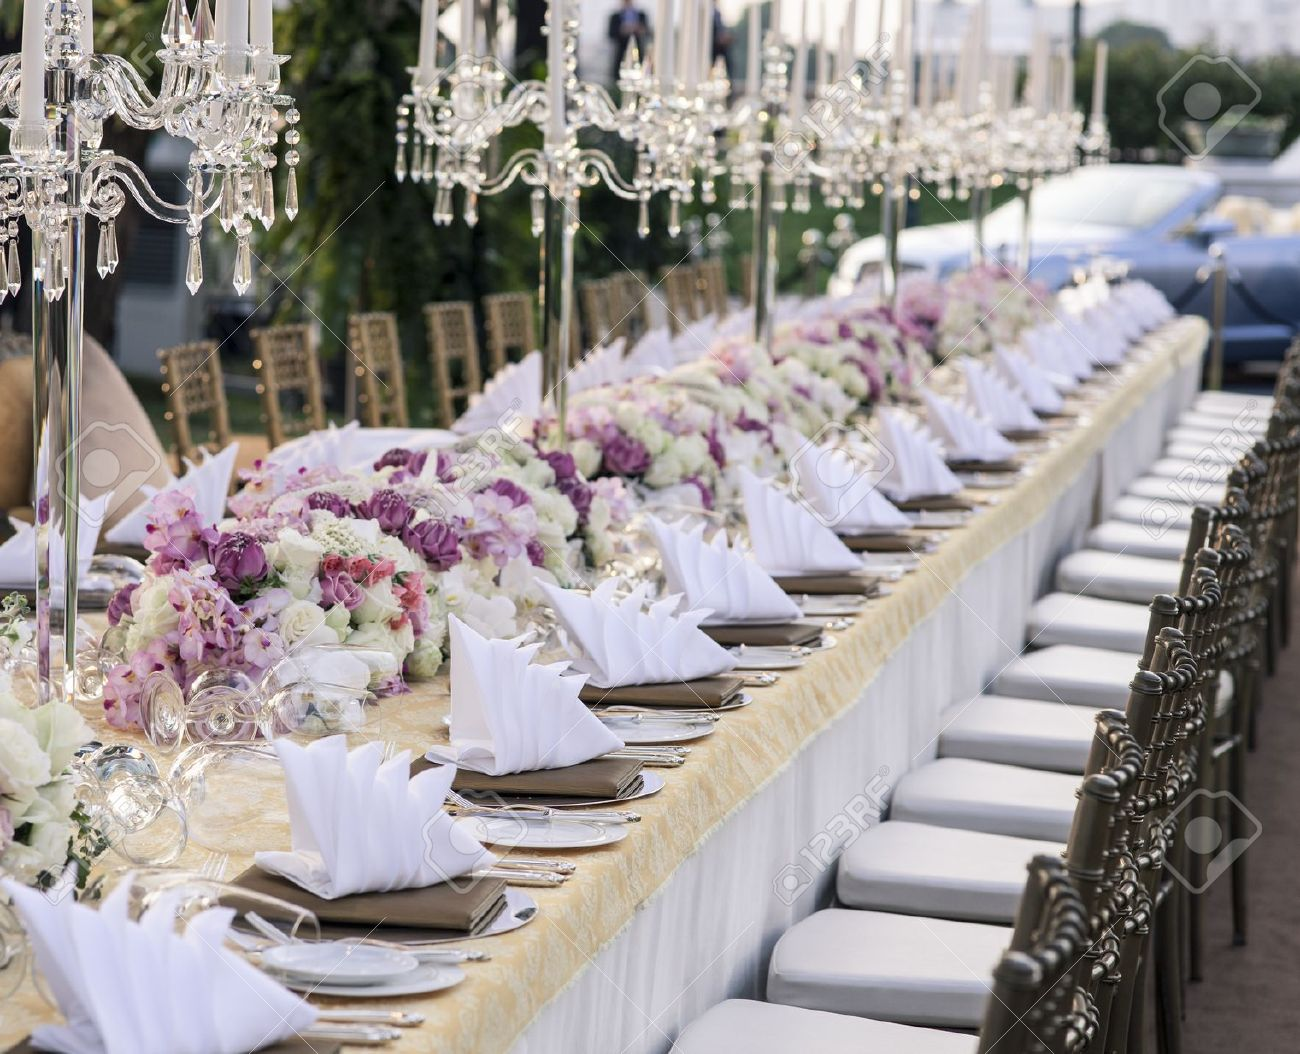 VINTAGE RECEPTION 17901673 The elegant dinner table Stock Photo wedding table reception